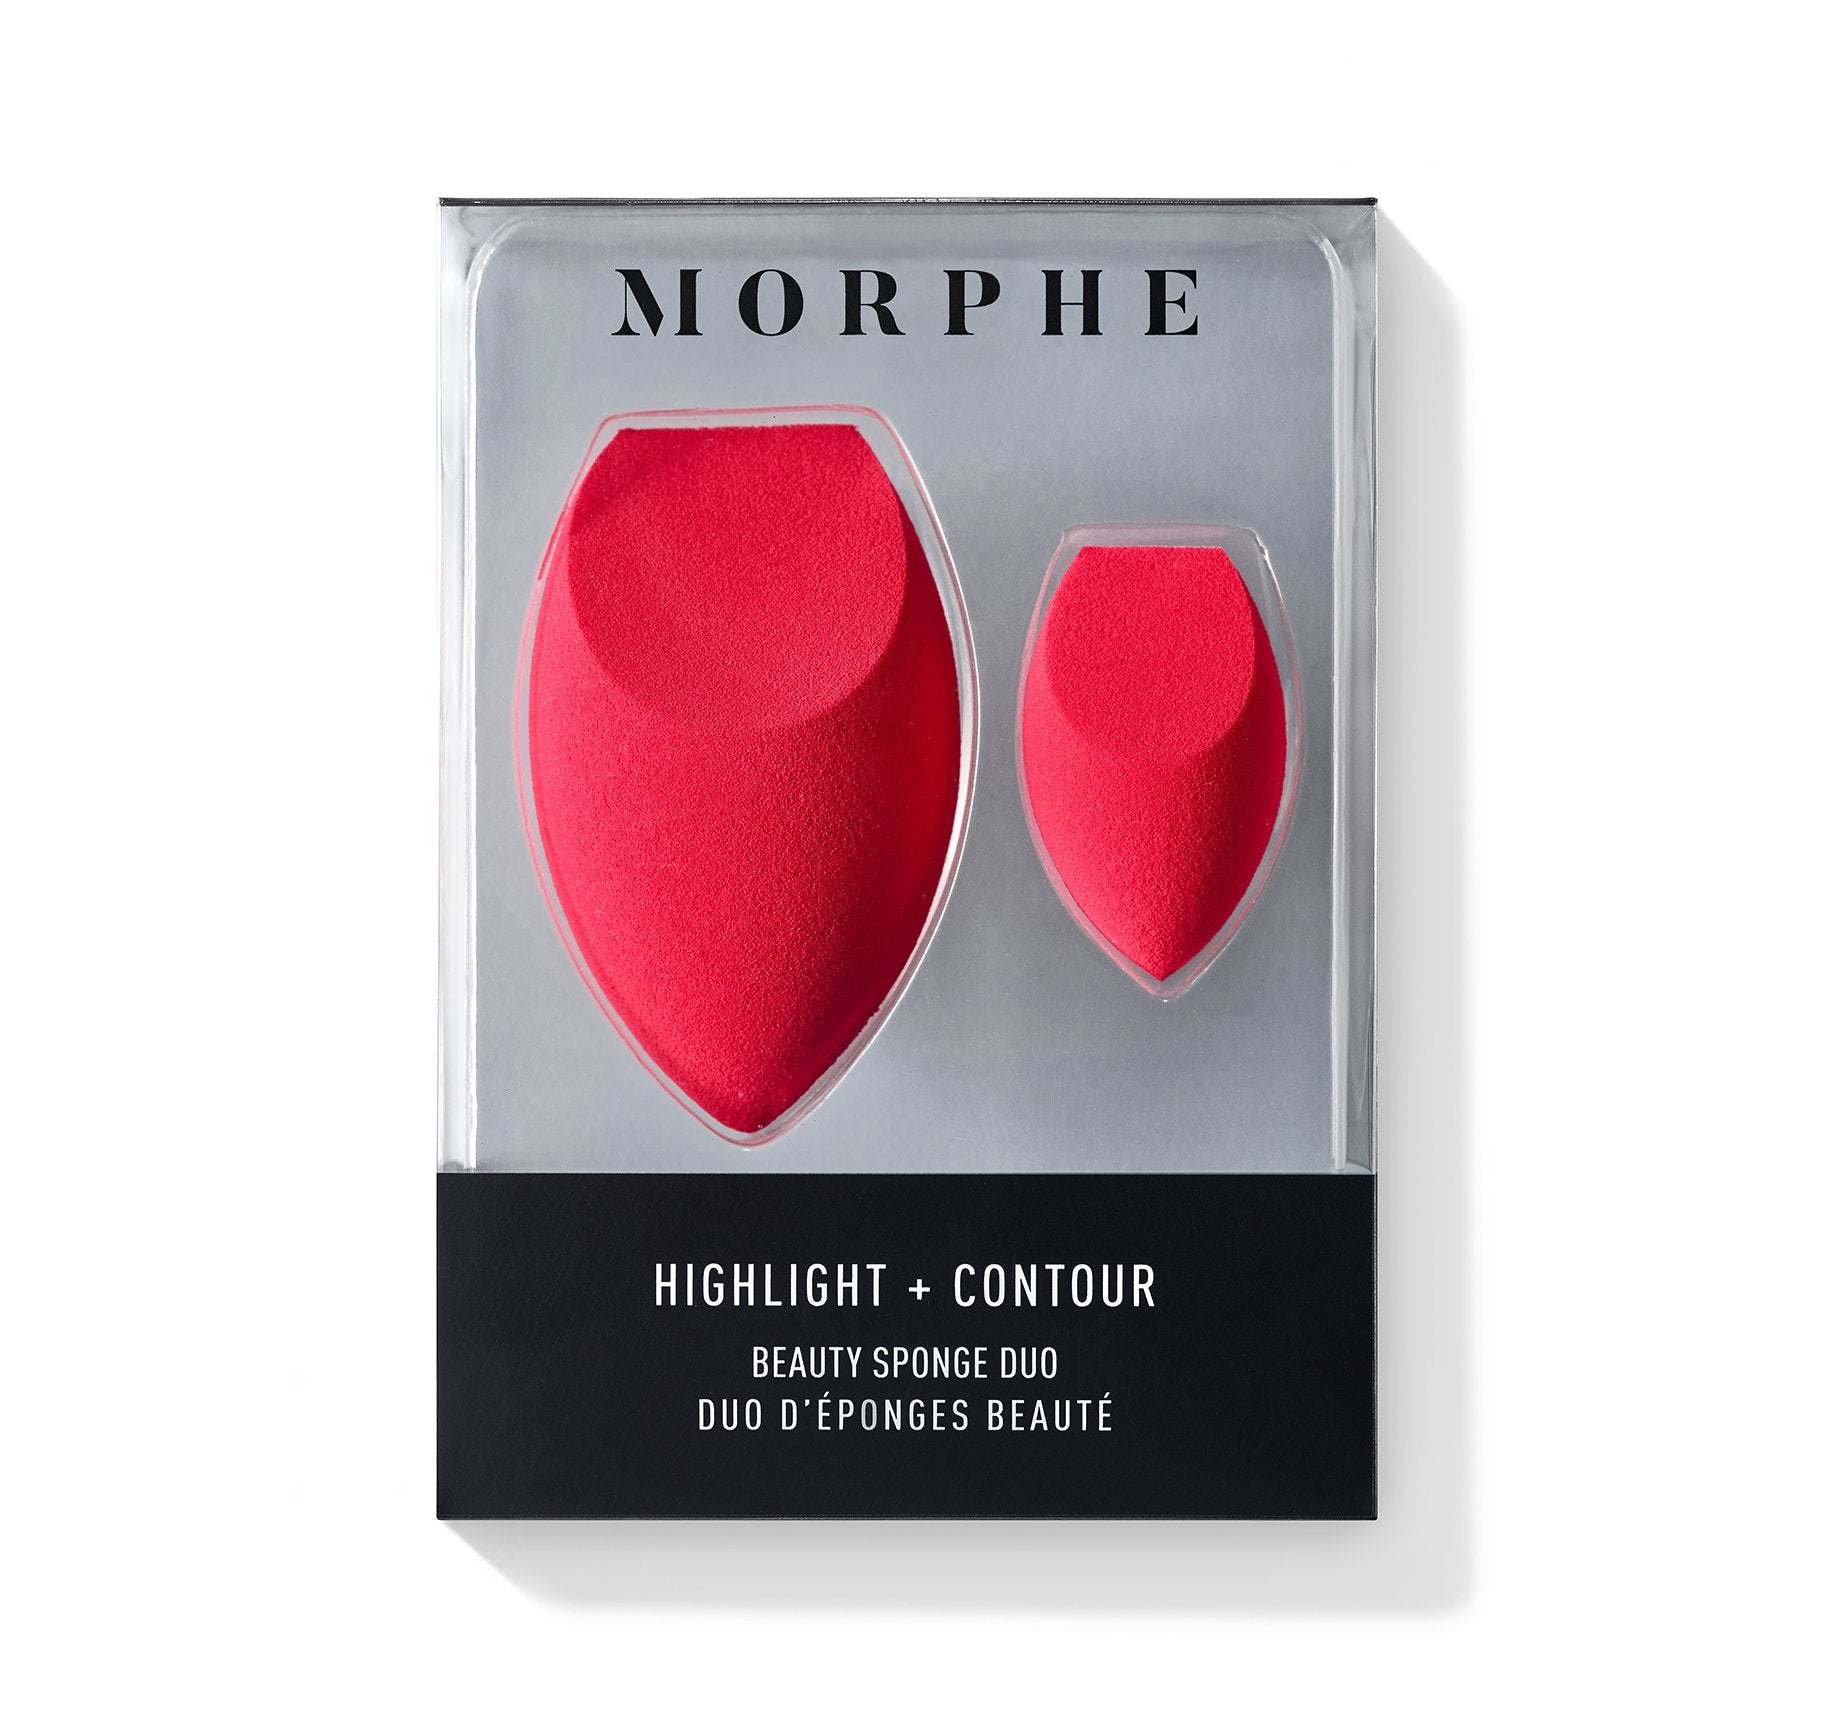 HIGHLIGHT + CONTOUR BEAUTY SPONGE DUO, view larger image